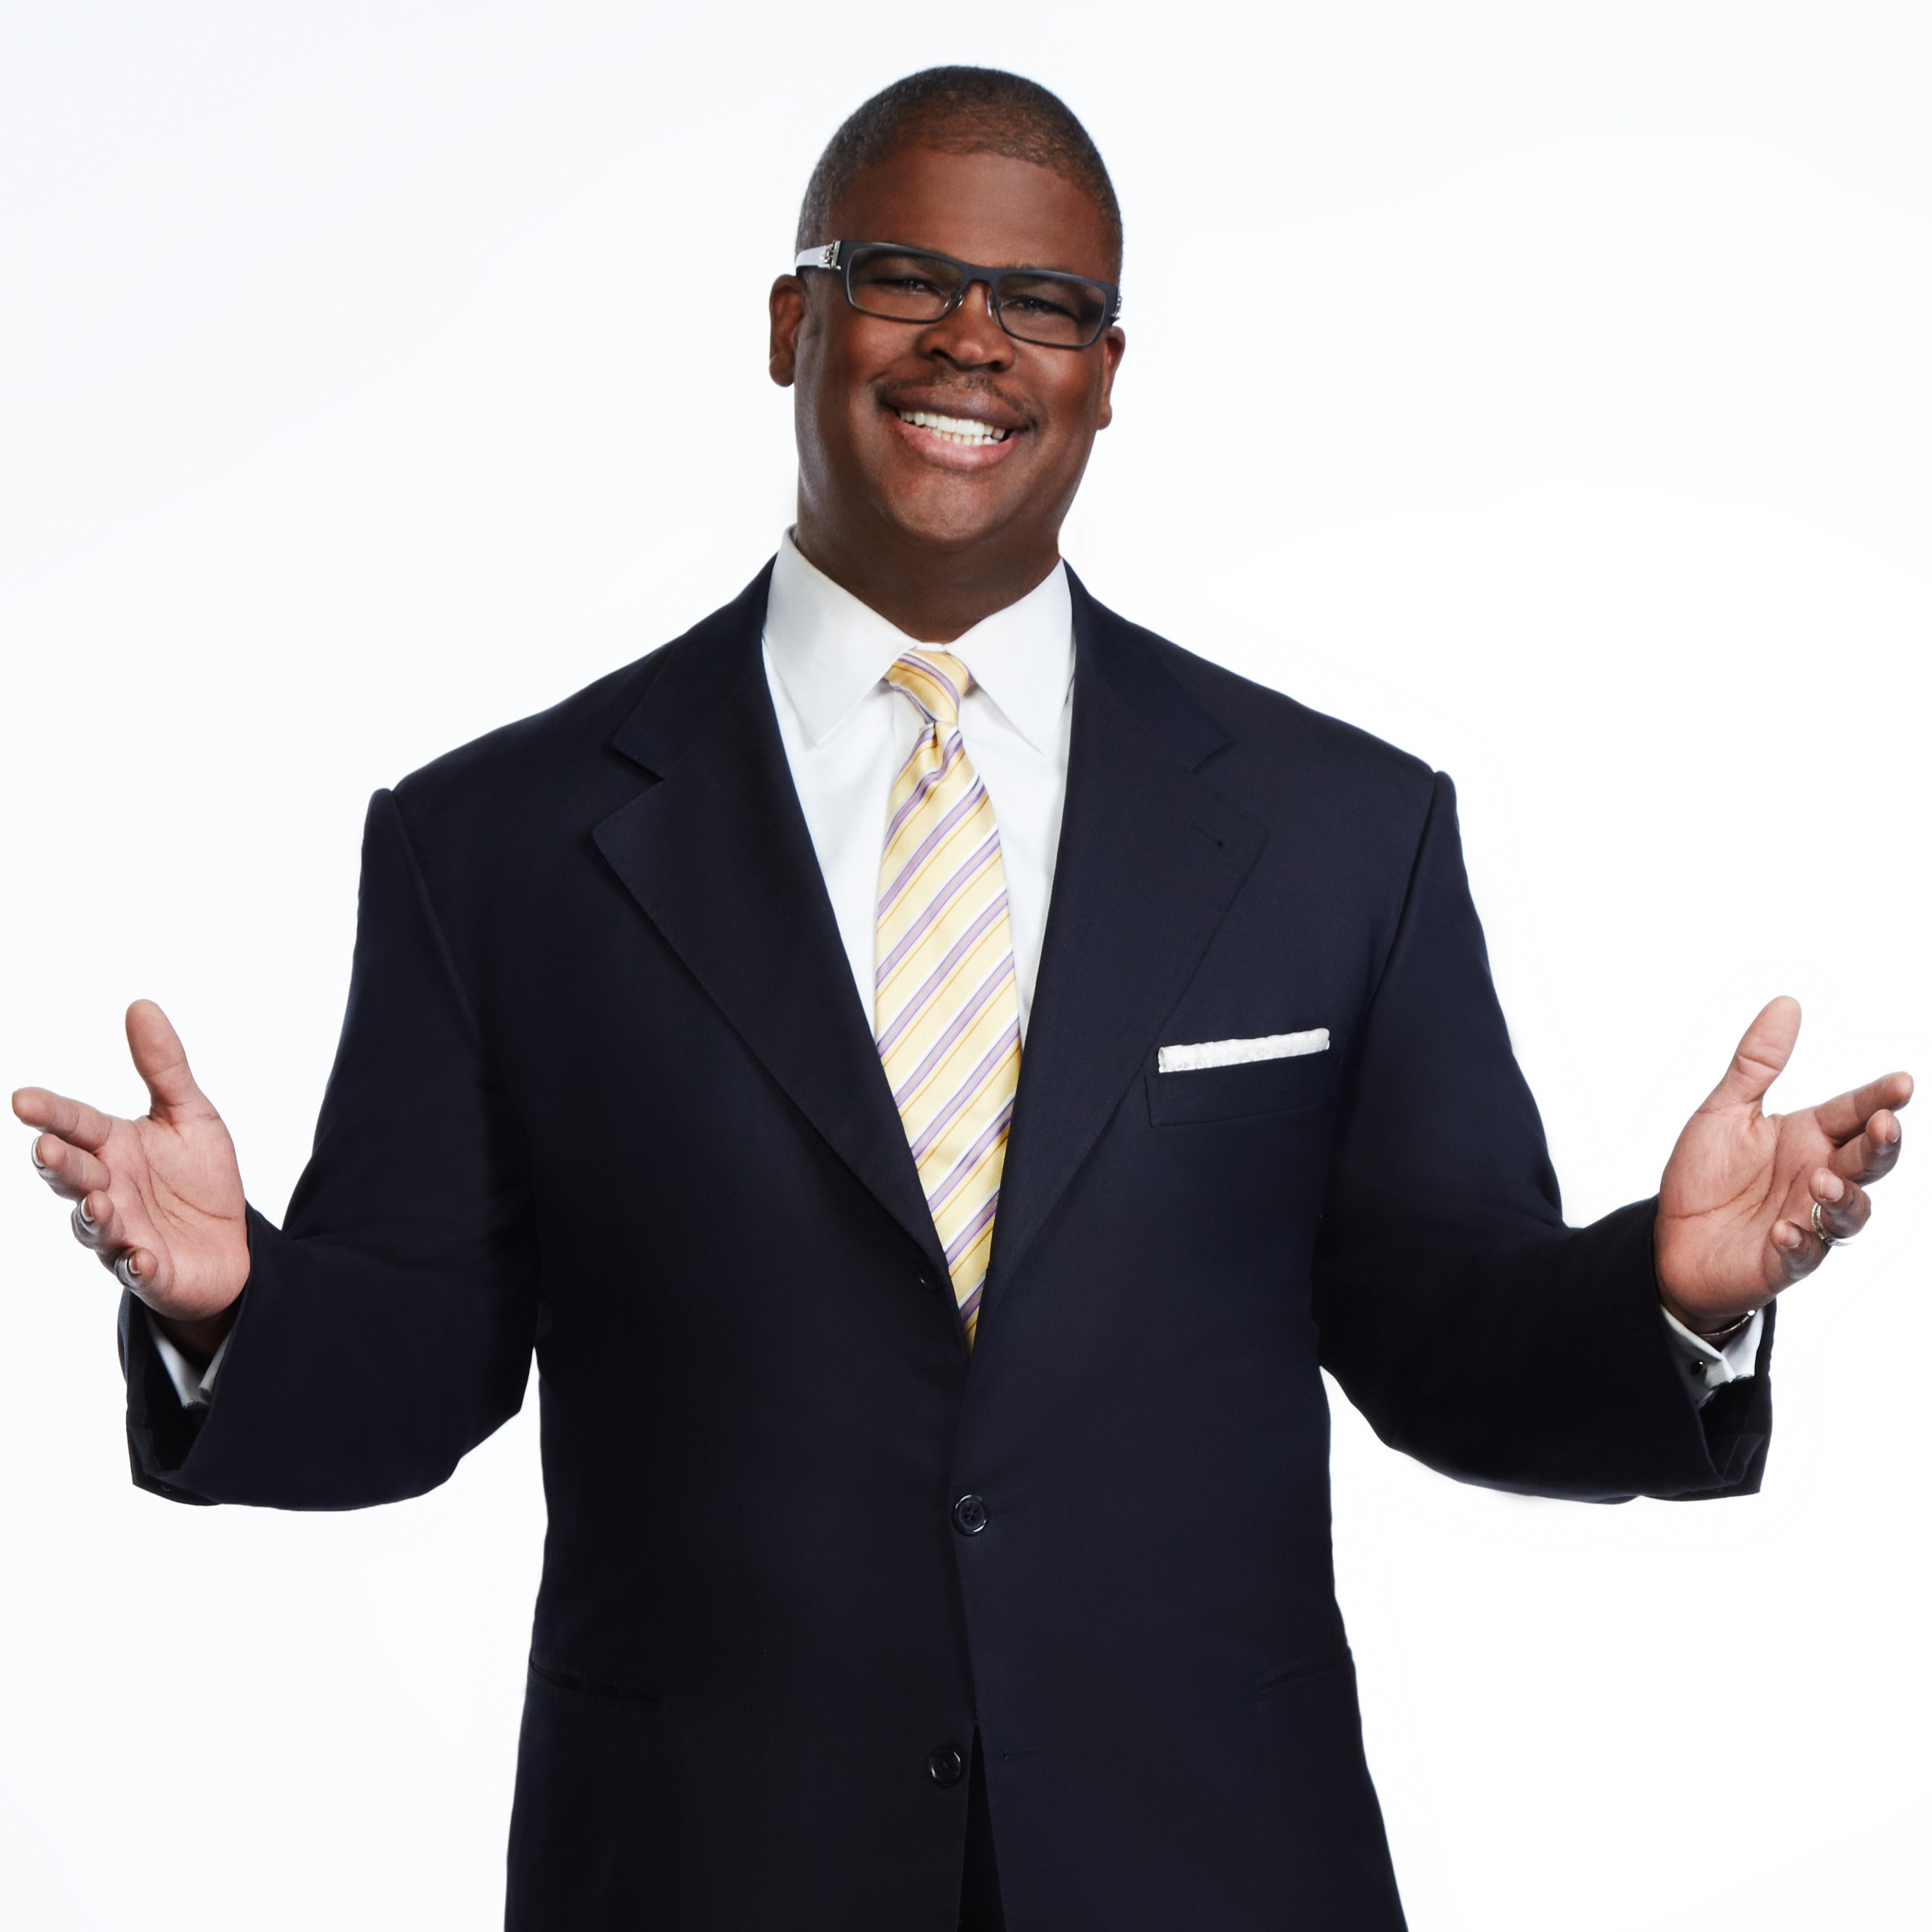 Charles Payne in white shirt and black suit, smiling and spreading his arms